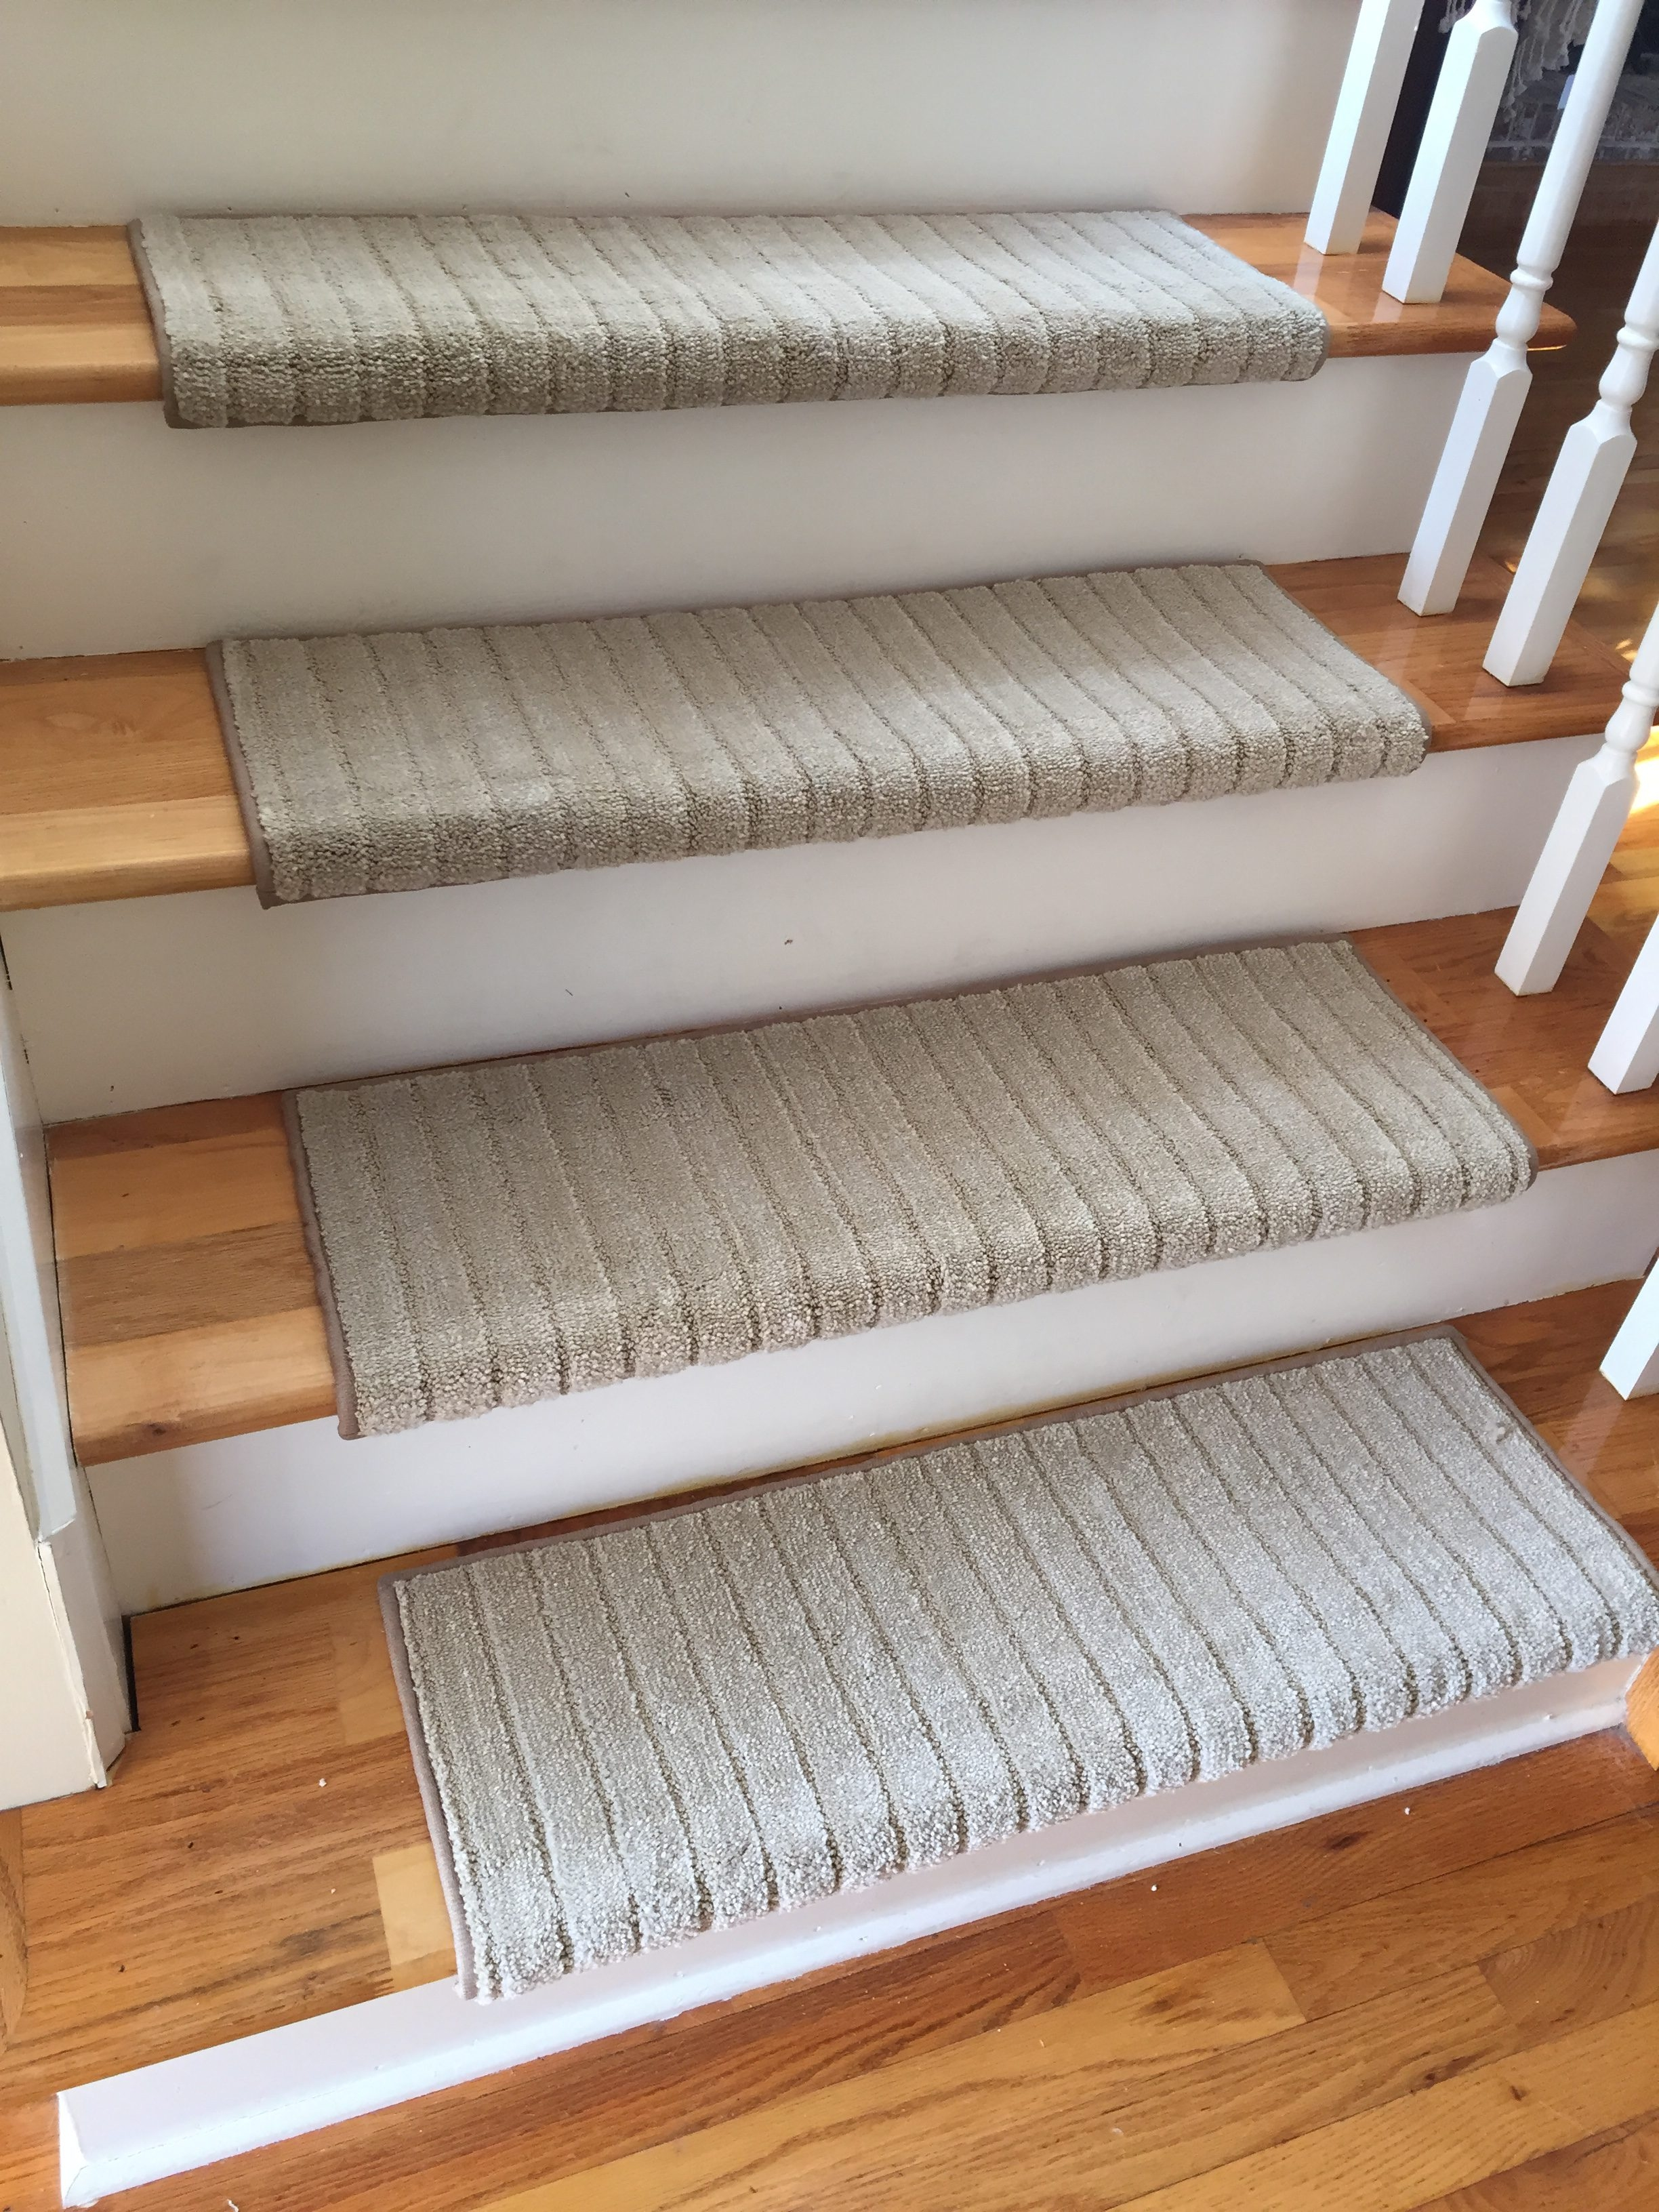 True Bullnose Carpet Stair Tread Mulberry Honey Glaze Sold Regarding Bullnose Stair Tread Carpets (Image 15 of 15)